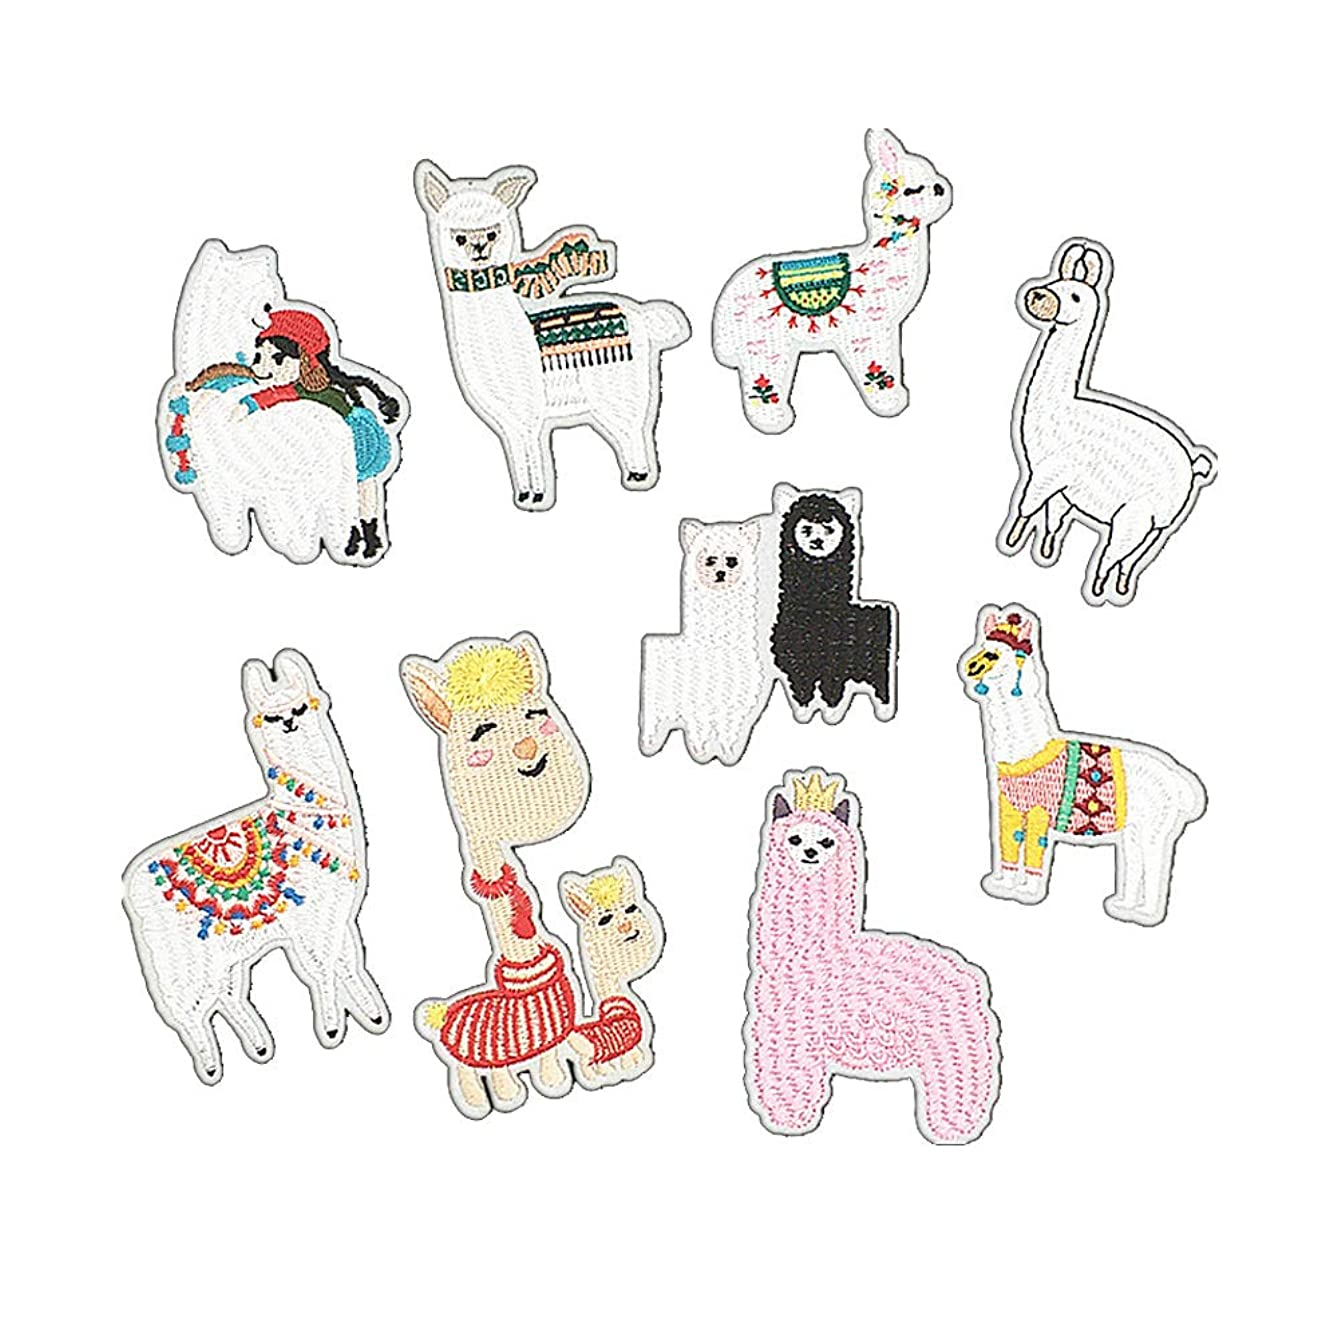 ARTEM Sheep Patch Alpaca Patch Iron On/Sew On Patch Embroidered Badge Patch Children's Clothing Decorative Applique Patches for Bag Shoes Pants Jeans Jackets(9 PCS)